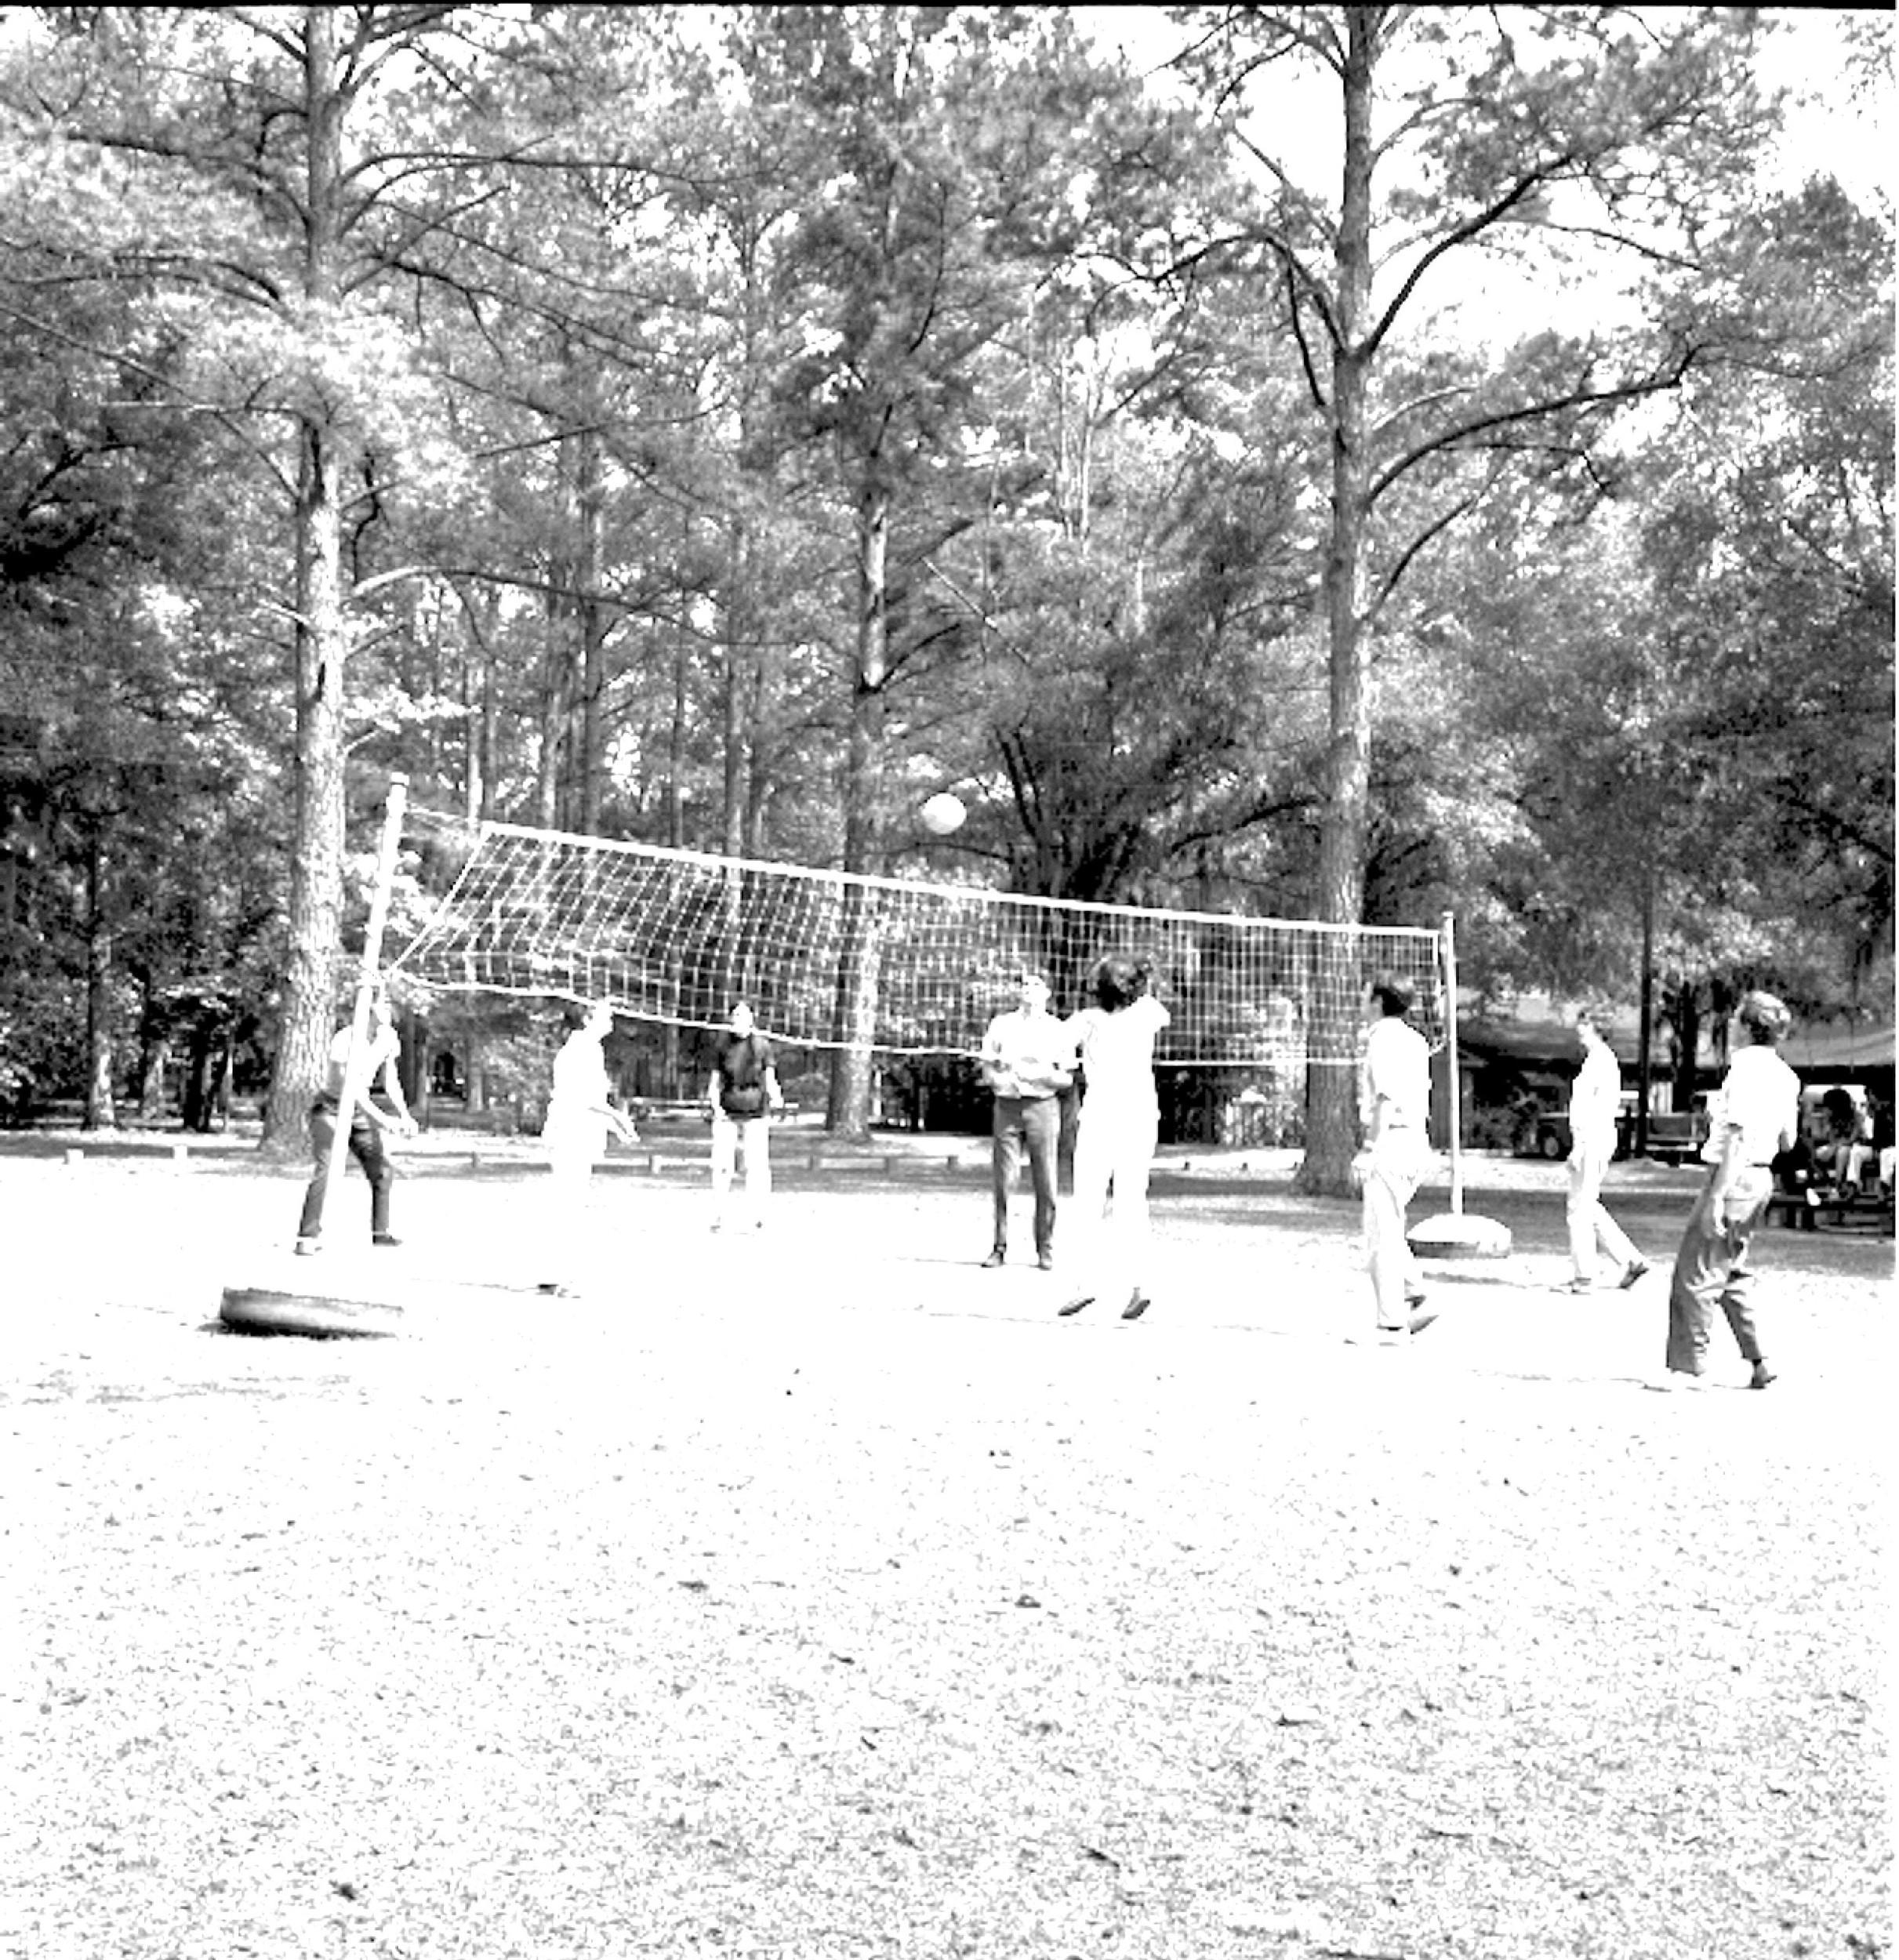 Visitors play volleyball on the Poinsett playground.